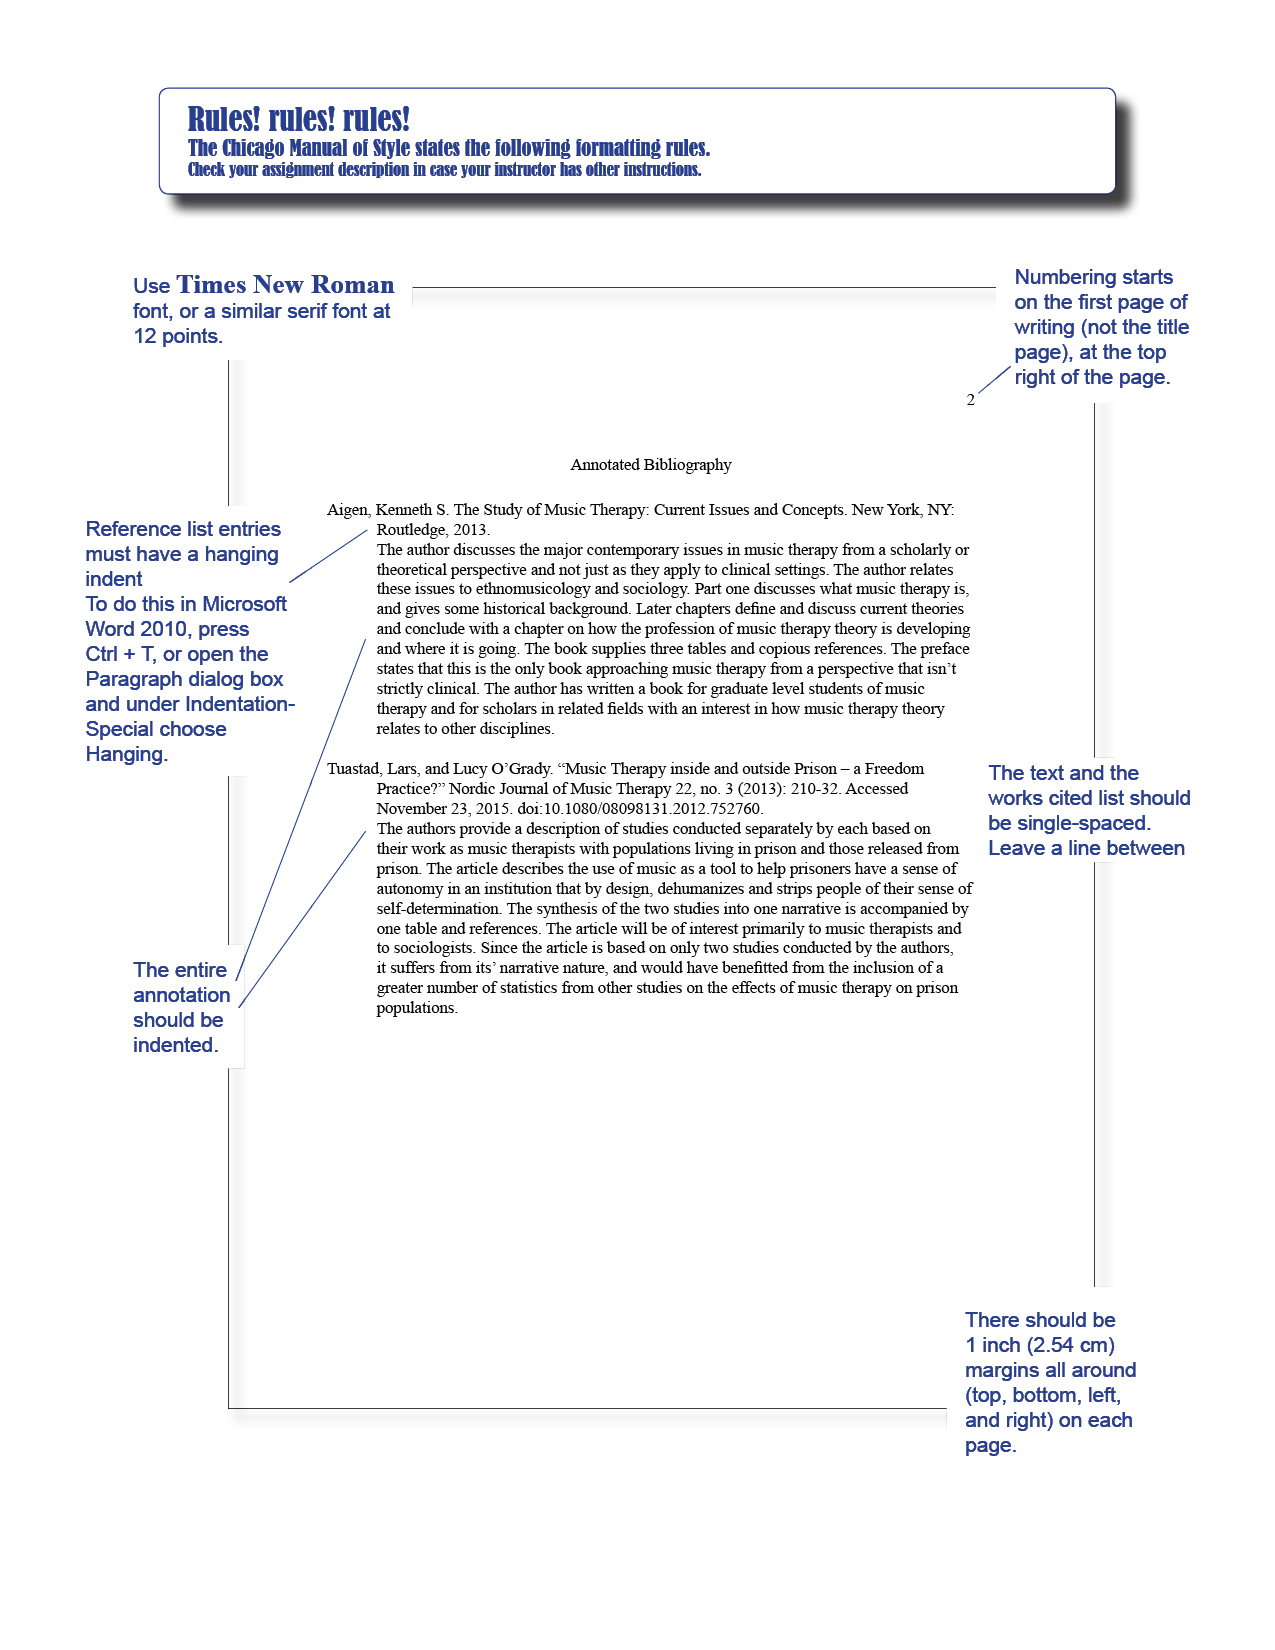 Chicago style annotated bibliography double spaced